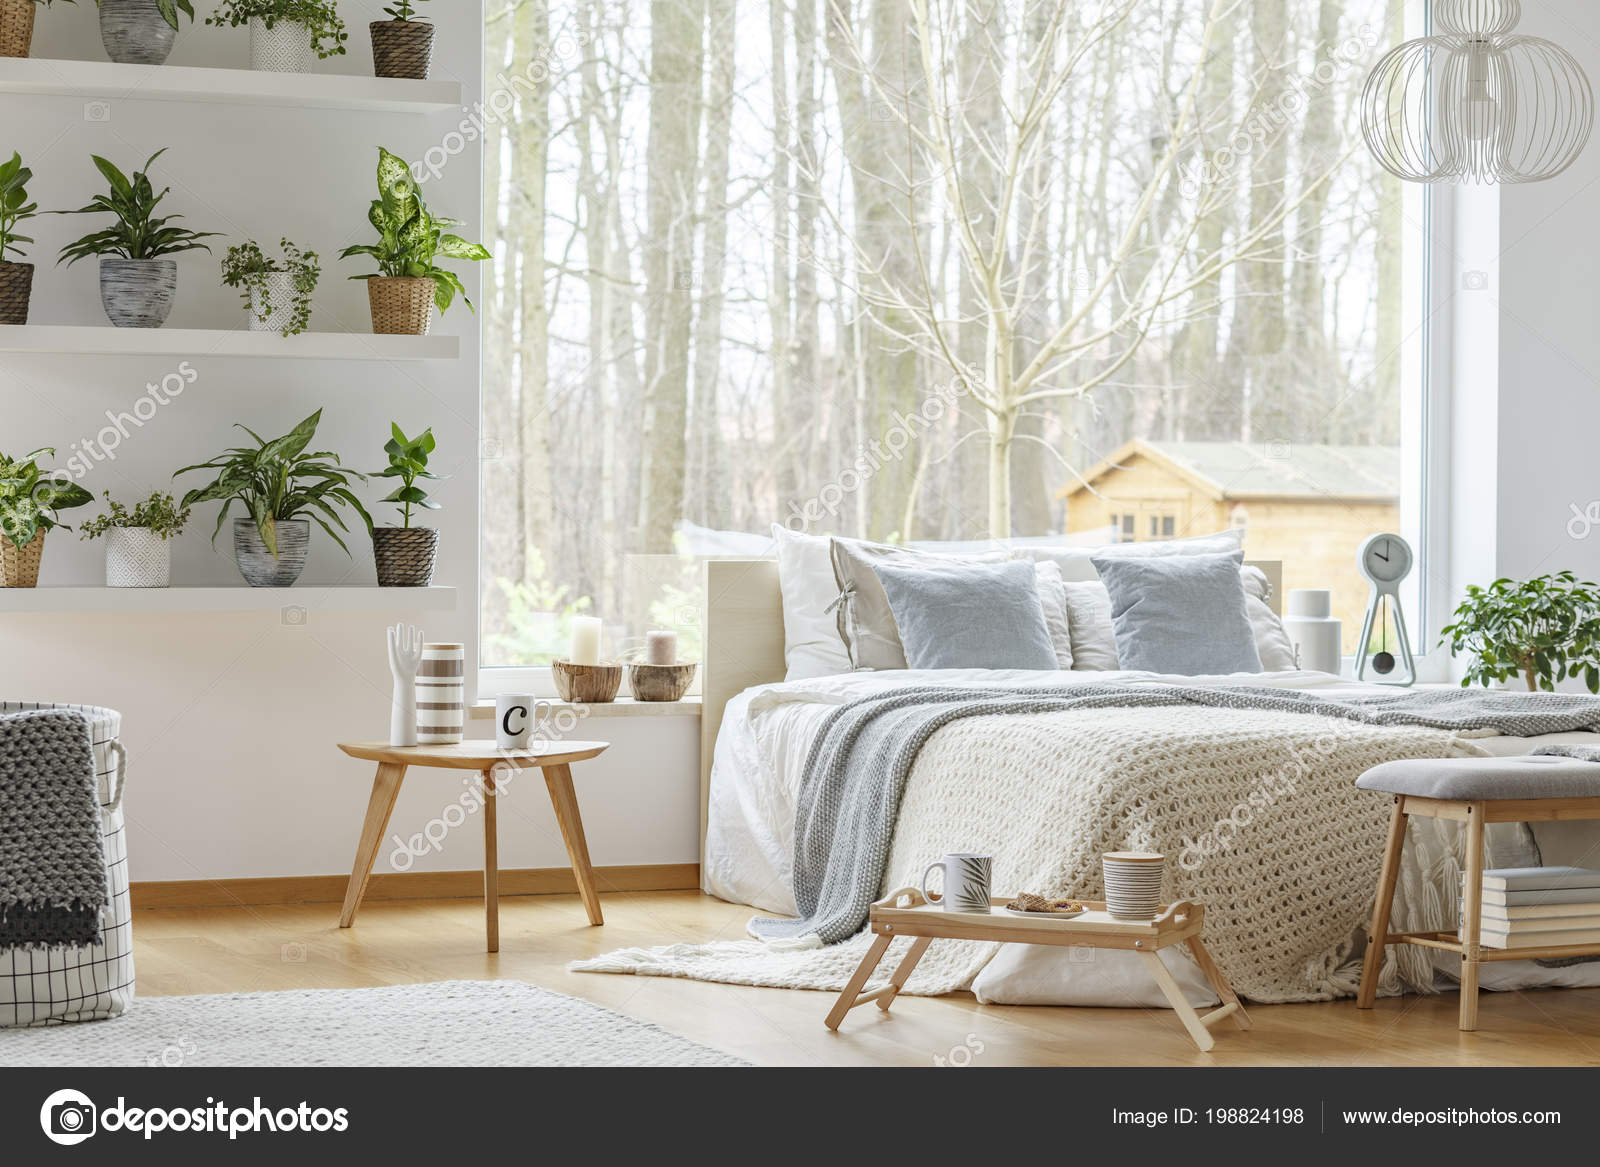 Blue Pillows Bed Next Wooden Table Natural Bedroom Interior Plants Stock Photo C Photographee Eu 198824198